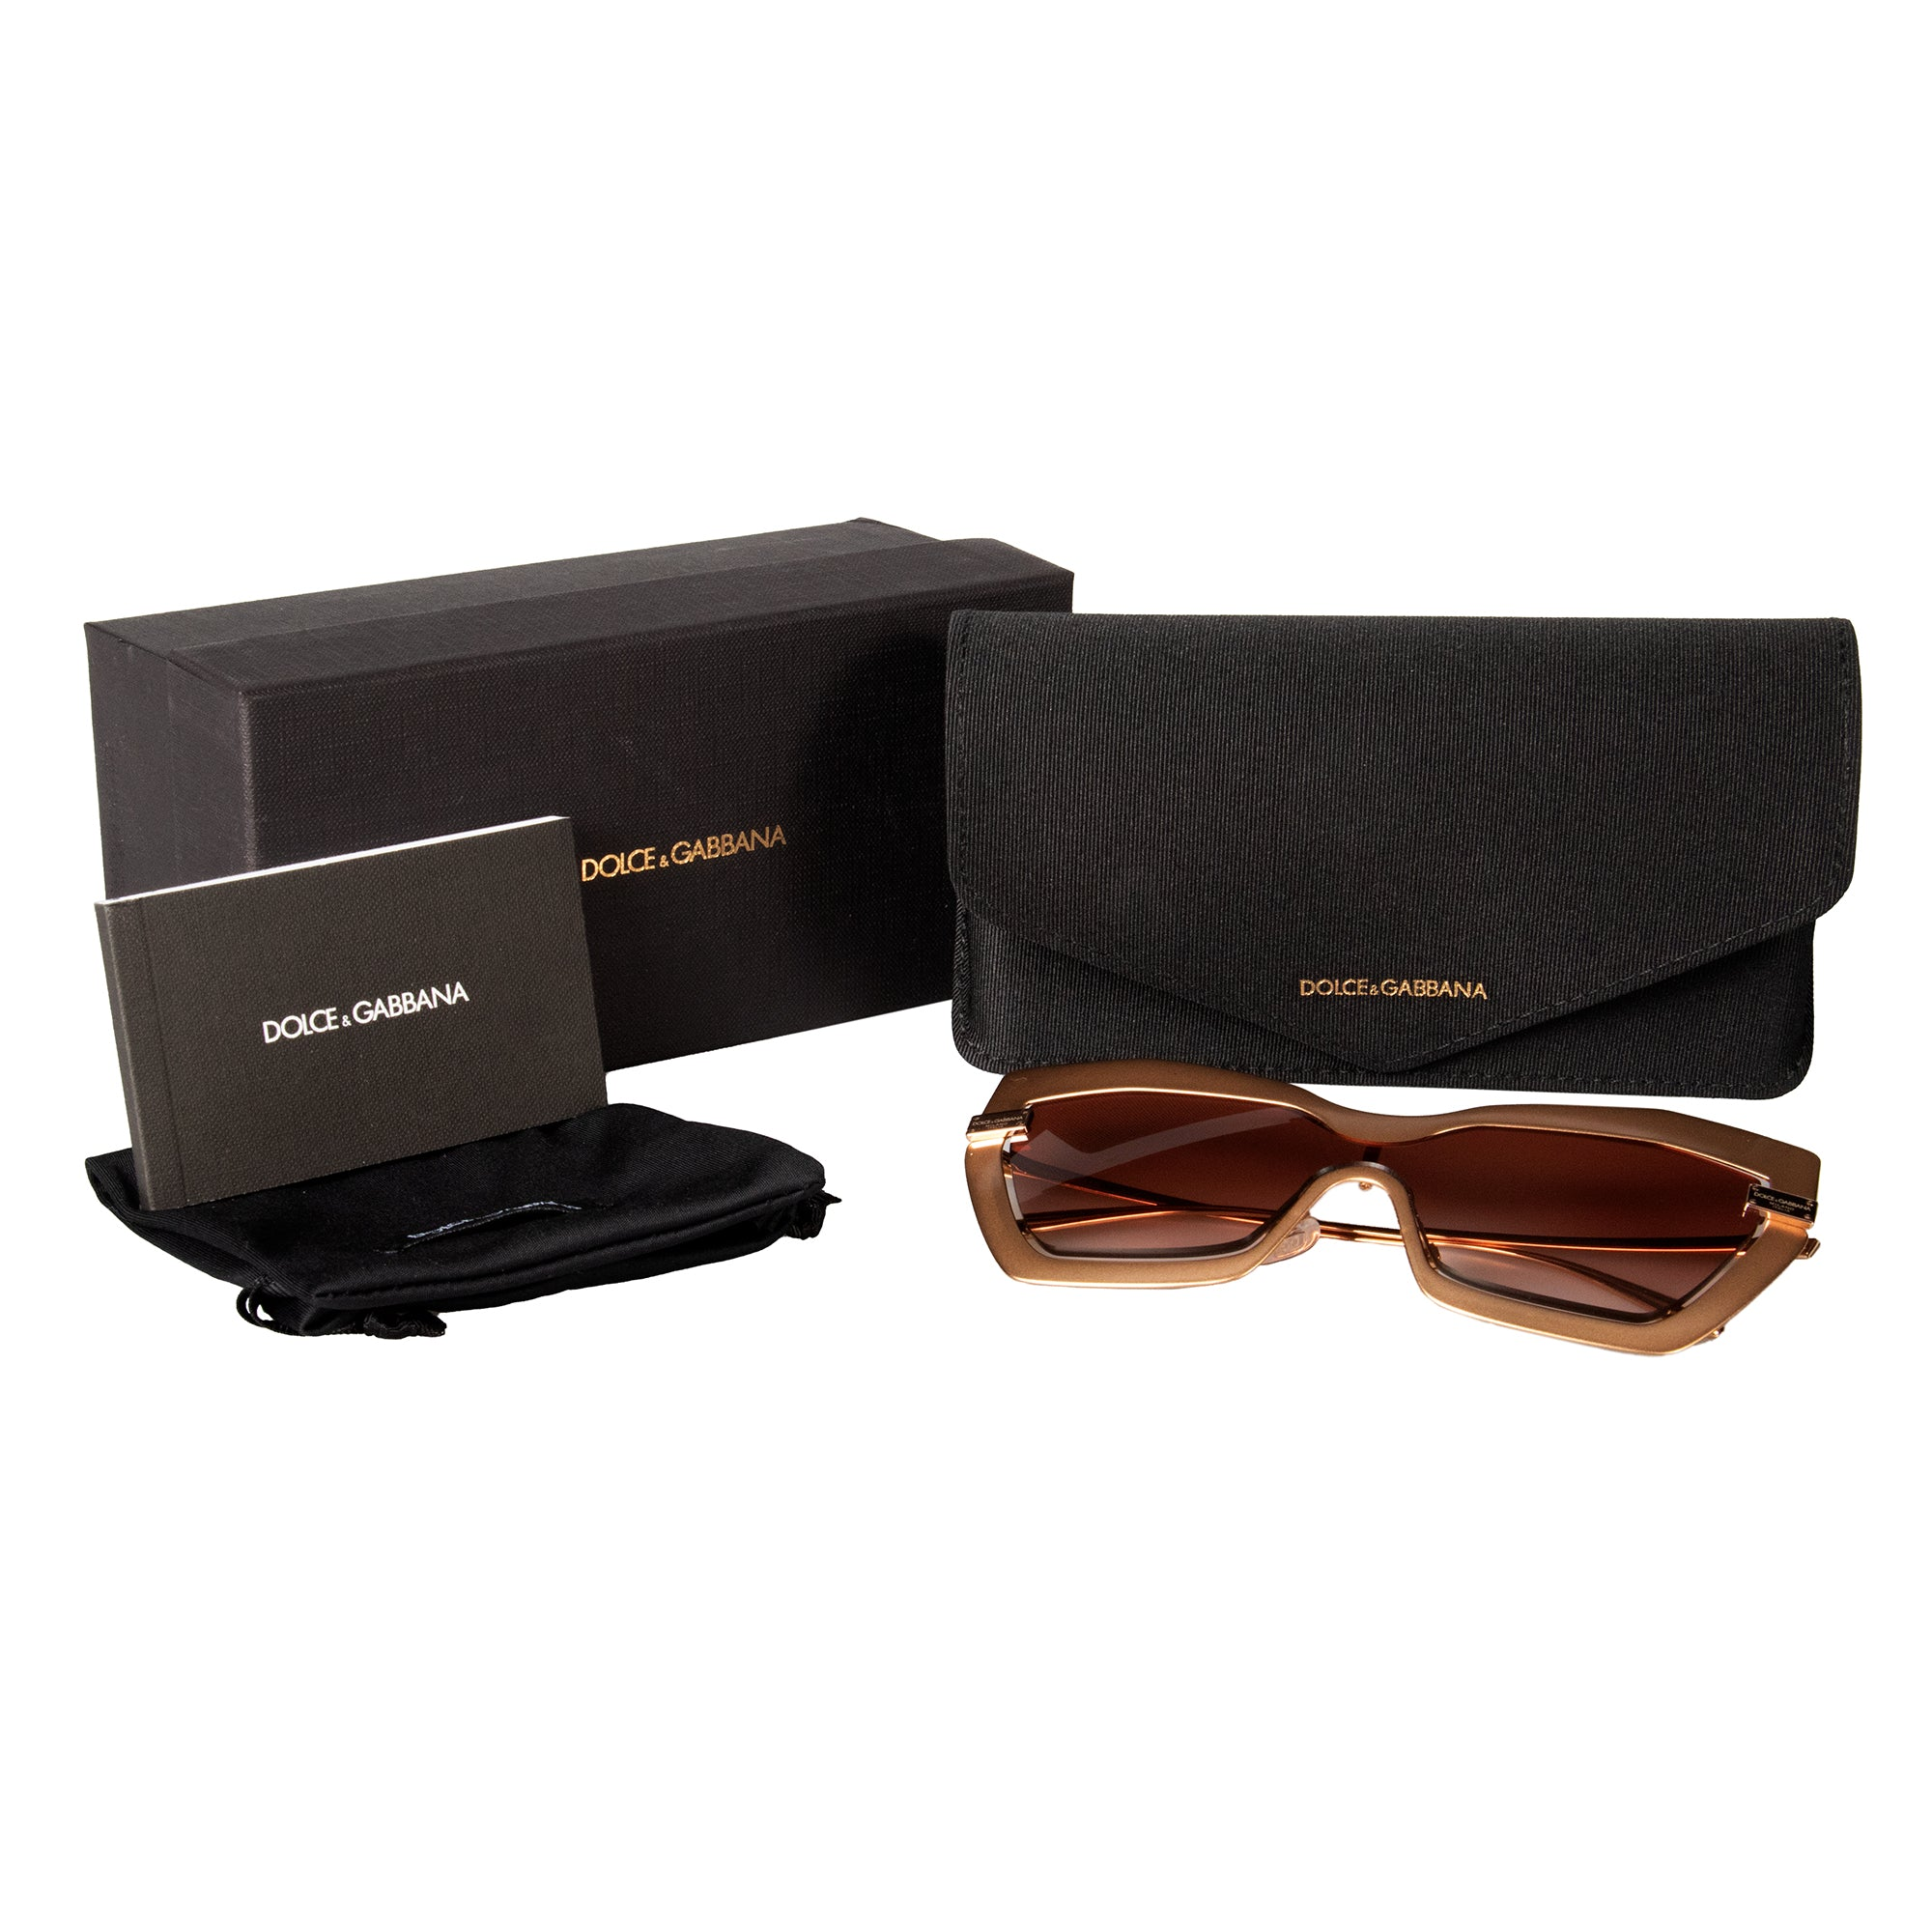 Dolce and Gabbana DG2224 133013 34 Cat Eye Sunglasses